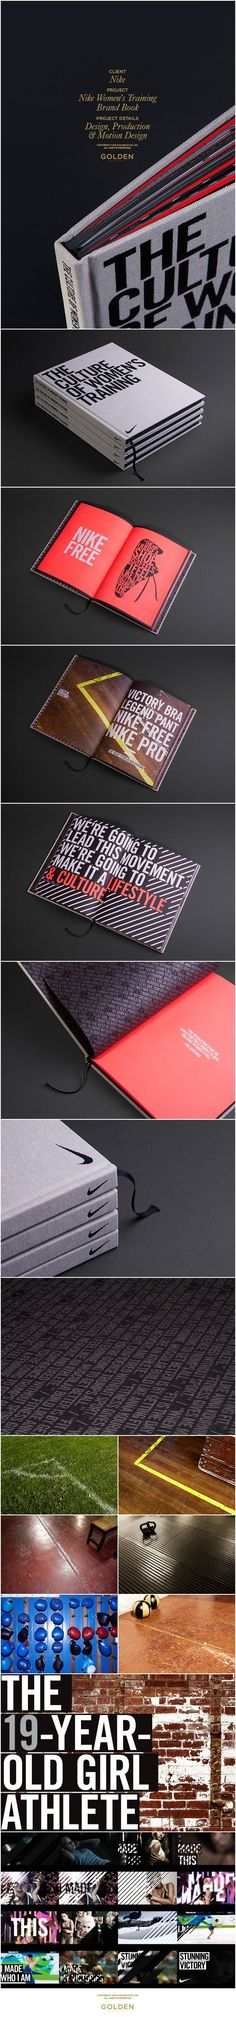 Nike Womens Training Brand Book on Editorial Design Served Más